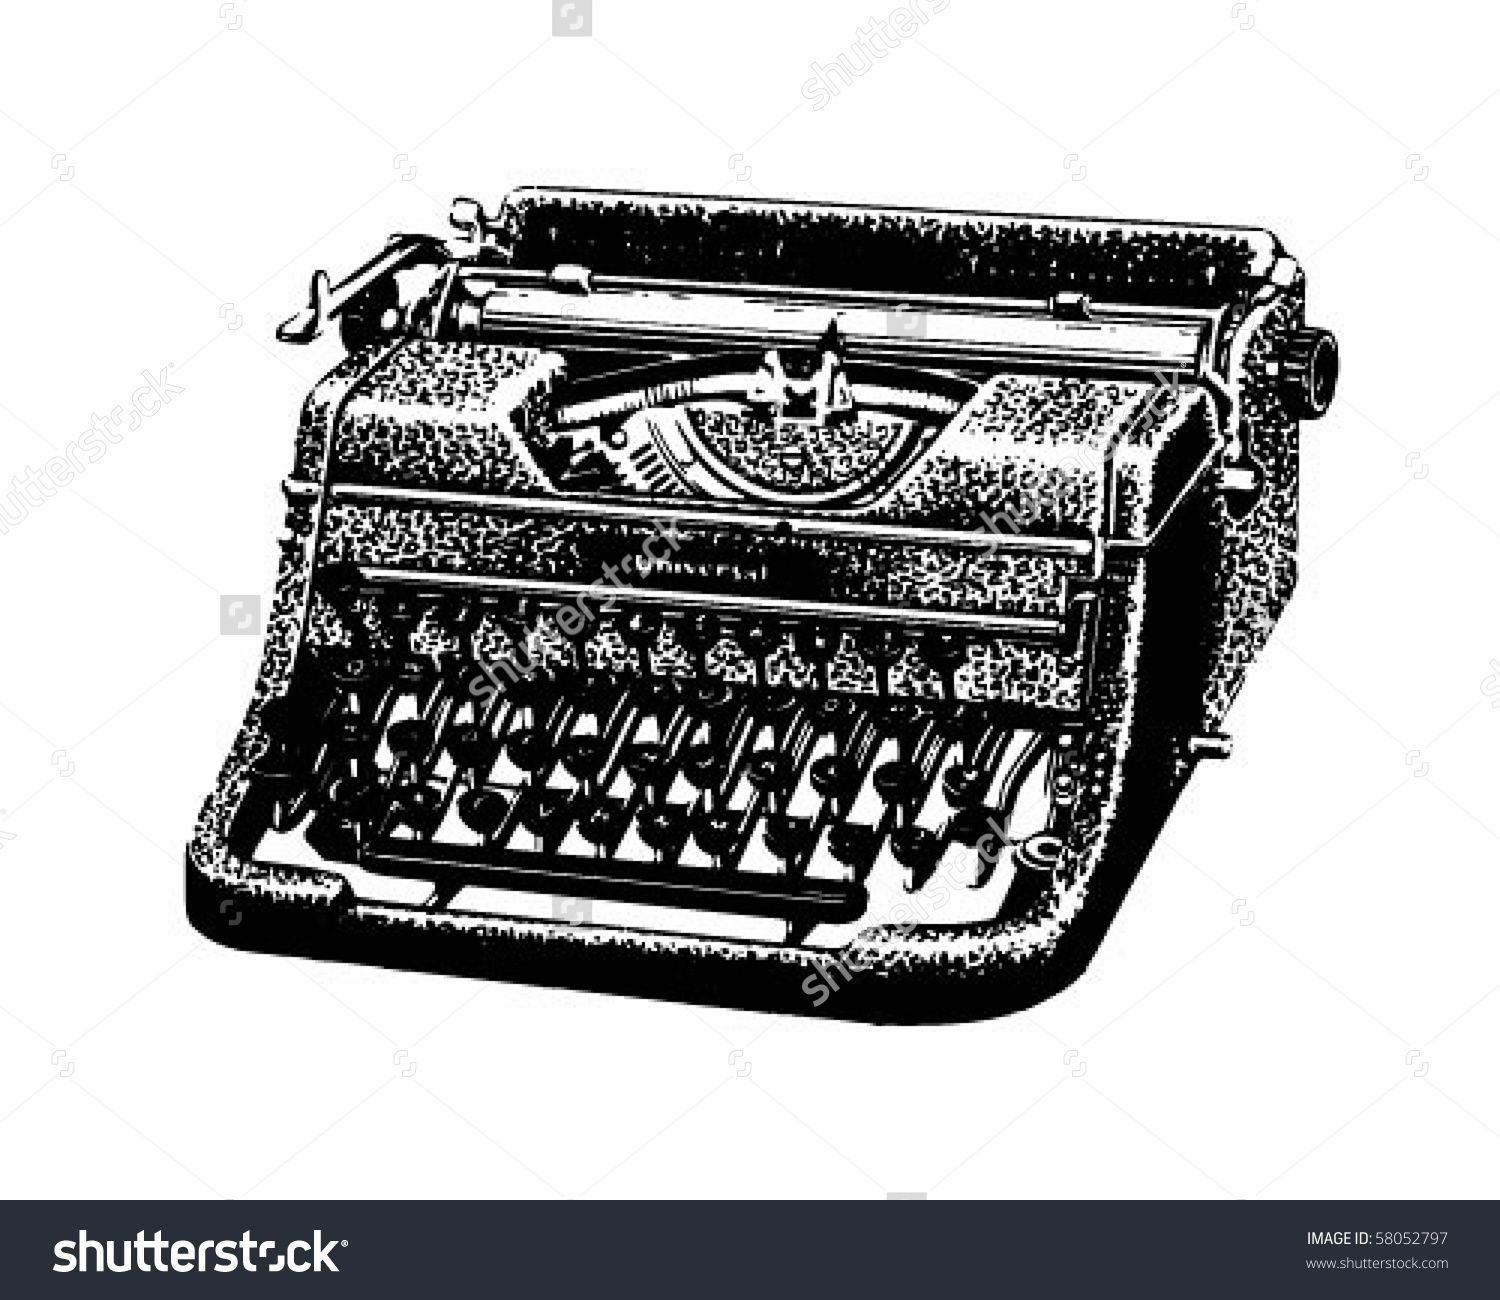 vector free download Typewriter vector vintage. Image result for old